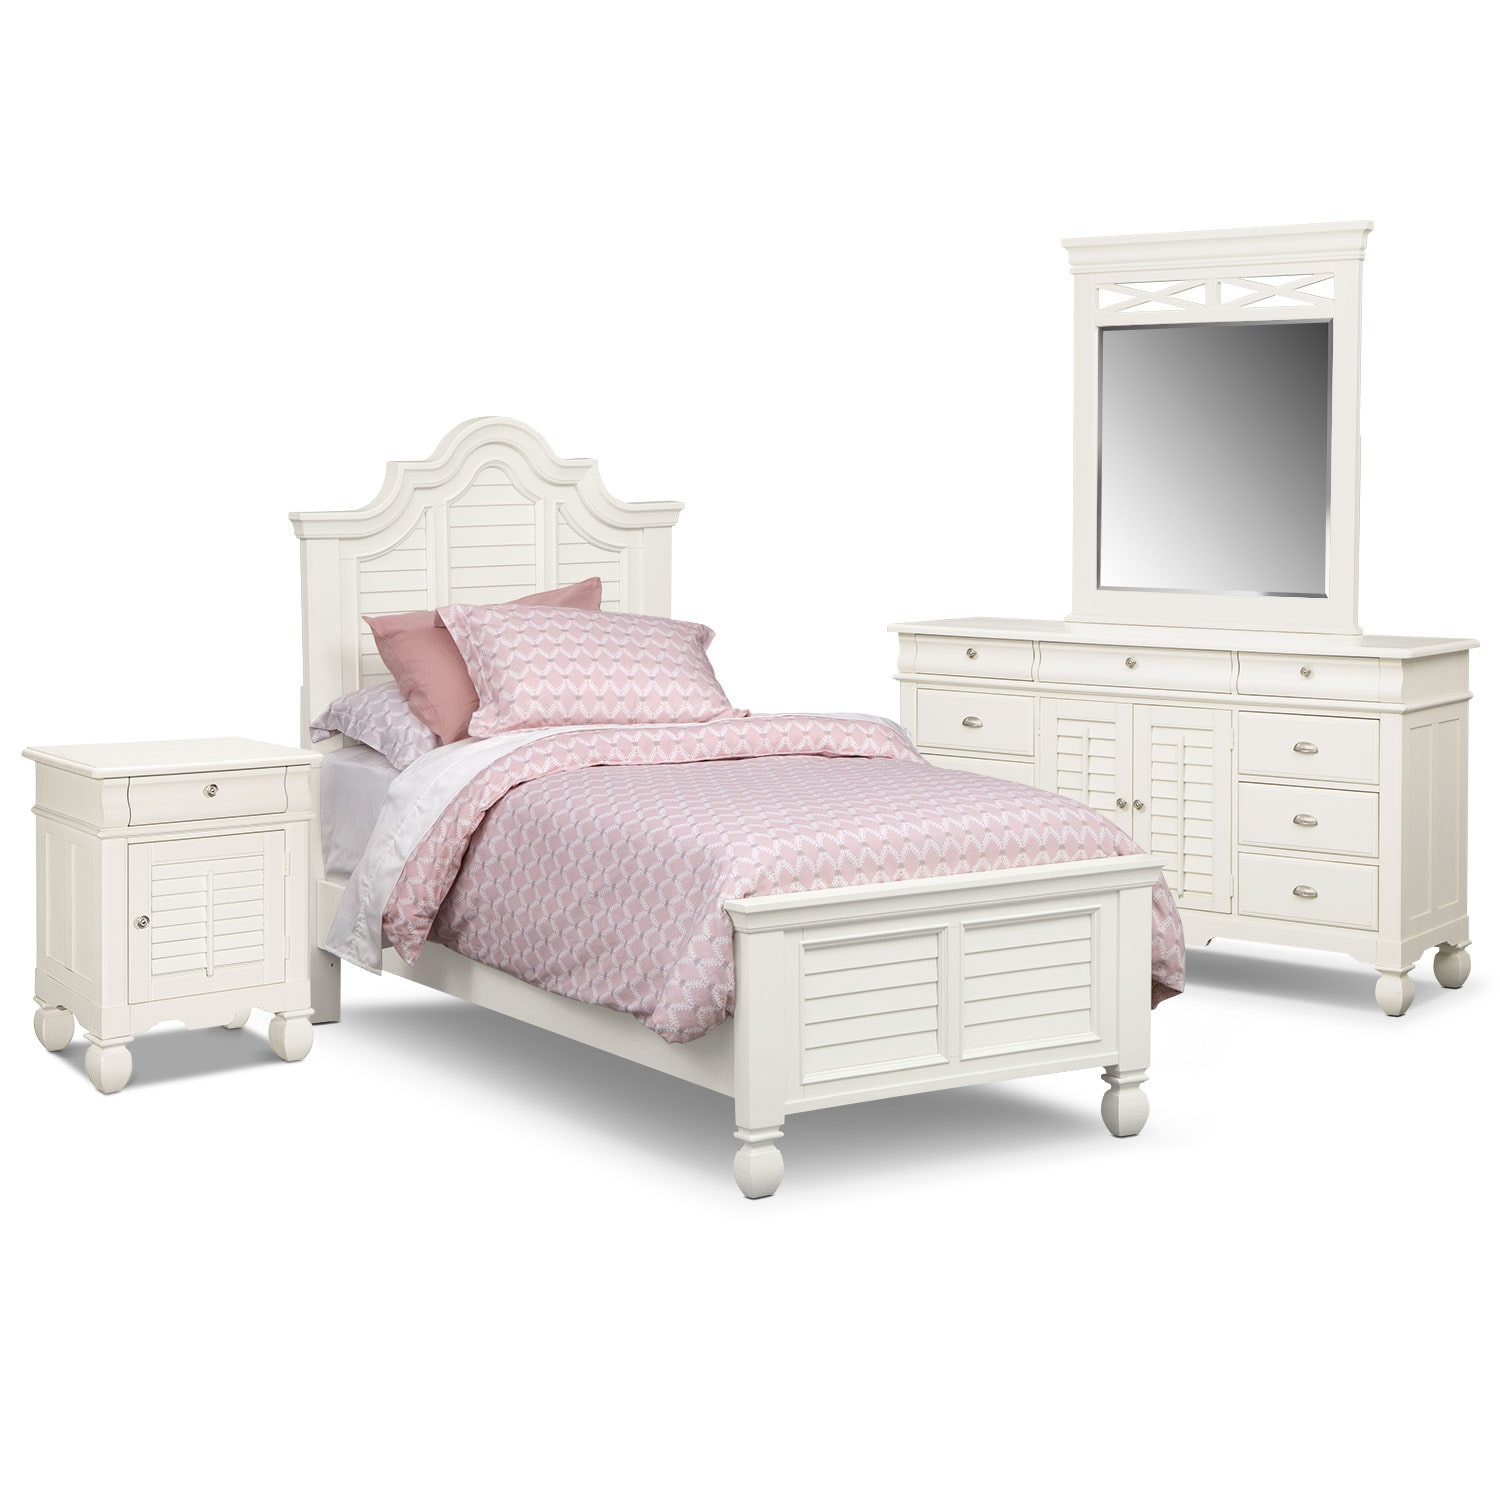 Plantation Cove 6-Piece Full Bedroom Set with Door Nightstand - White